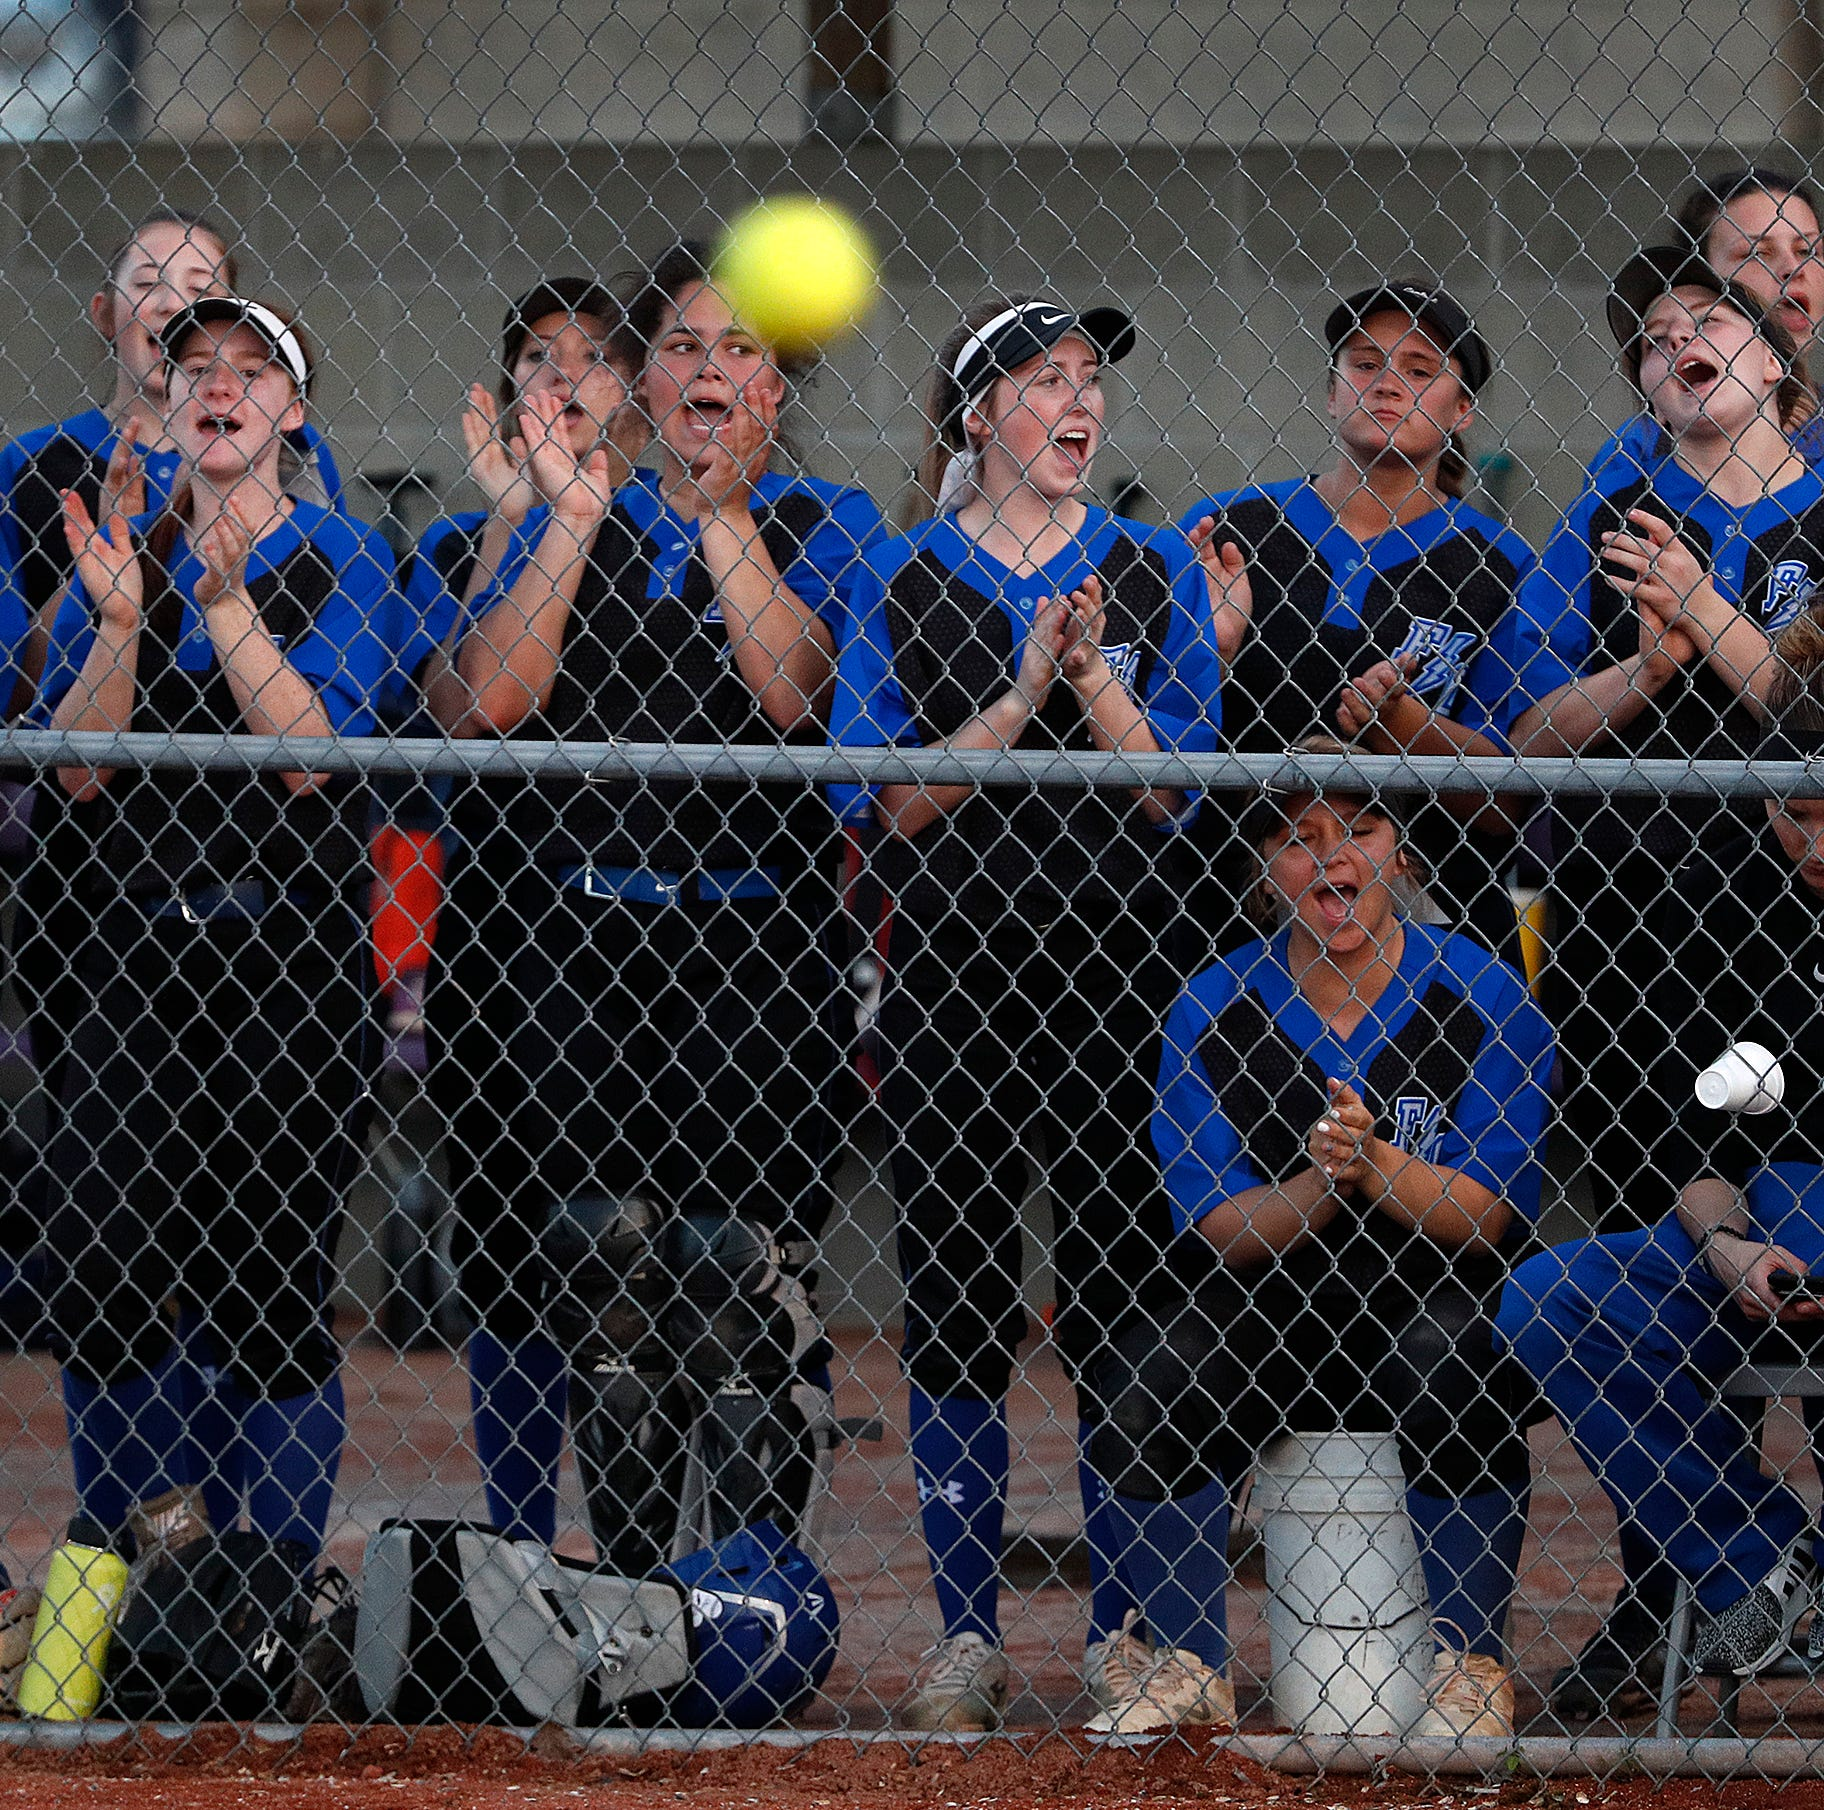 The Franklin Central Flashes cheer on their teammates during the Marion County girls softball tournament at Ben Davis High School on Monday, May 6, 2019.